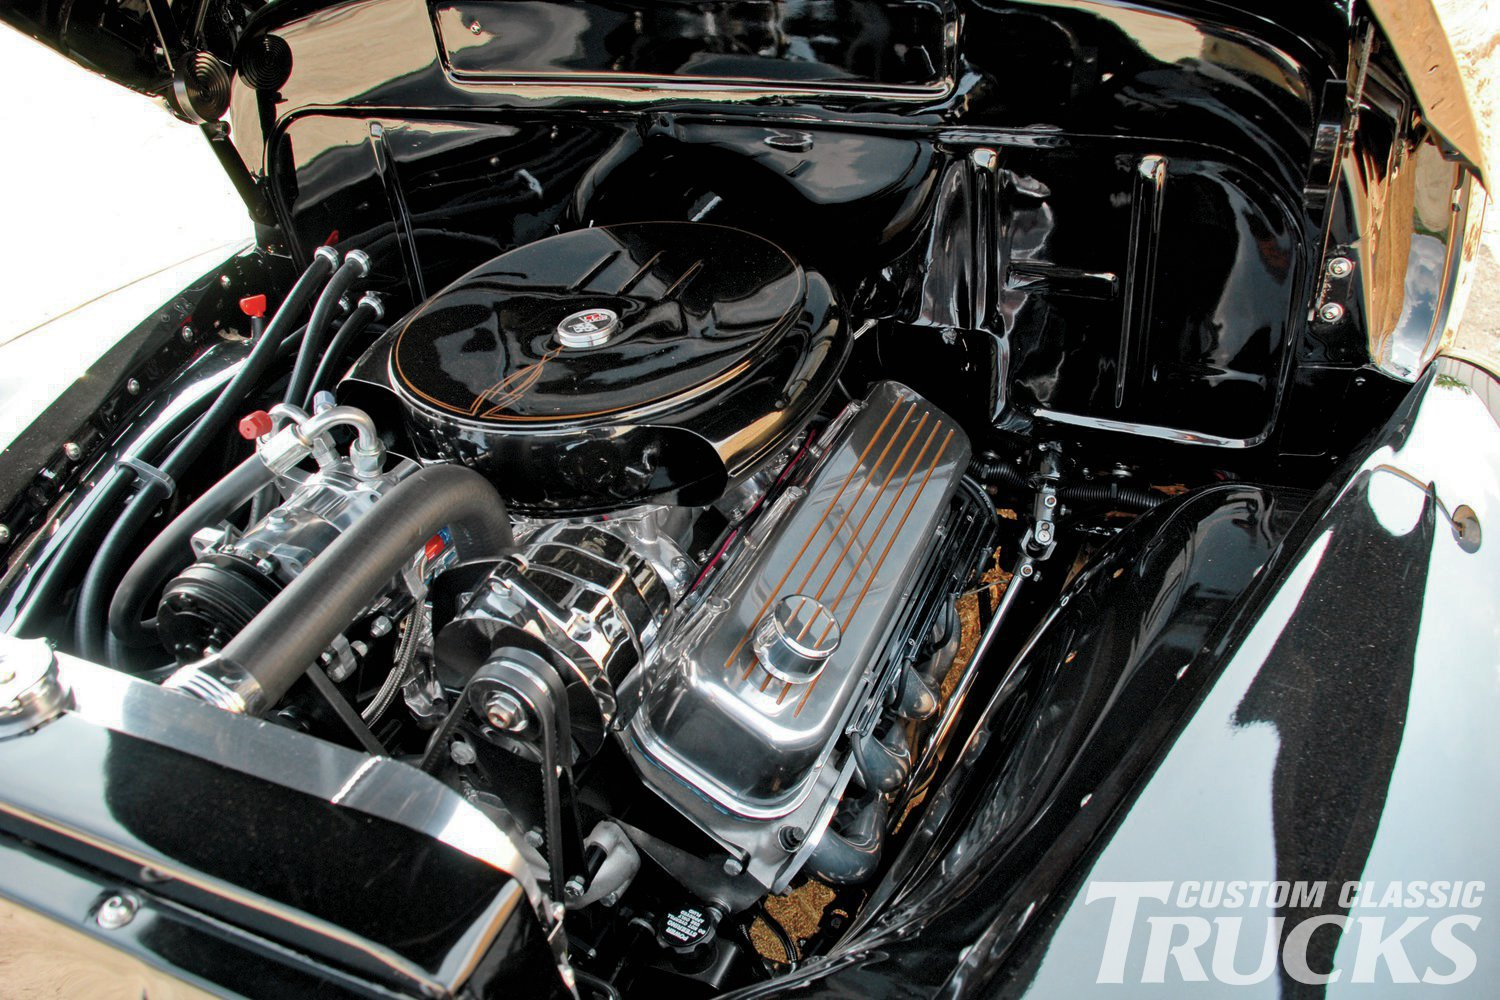 With such a conservative outward appearance many people are shocked to find a potent 496ci Chevy under the hood. The firewall has been smoothed and a vintage-style air breather keeps the clean and simple theme going.